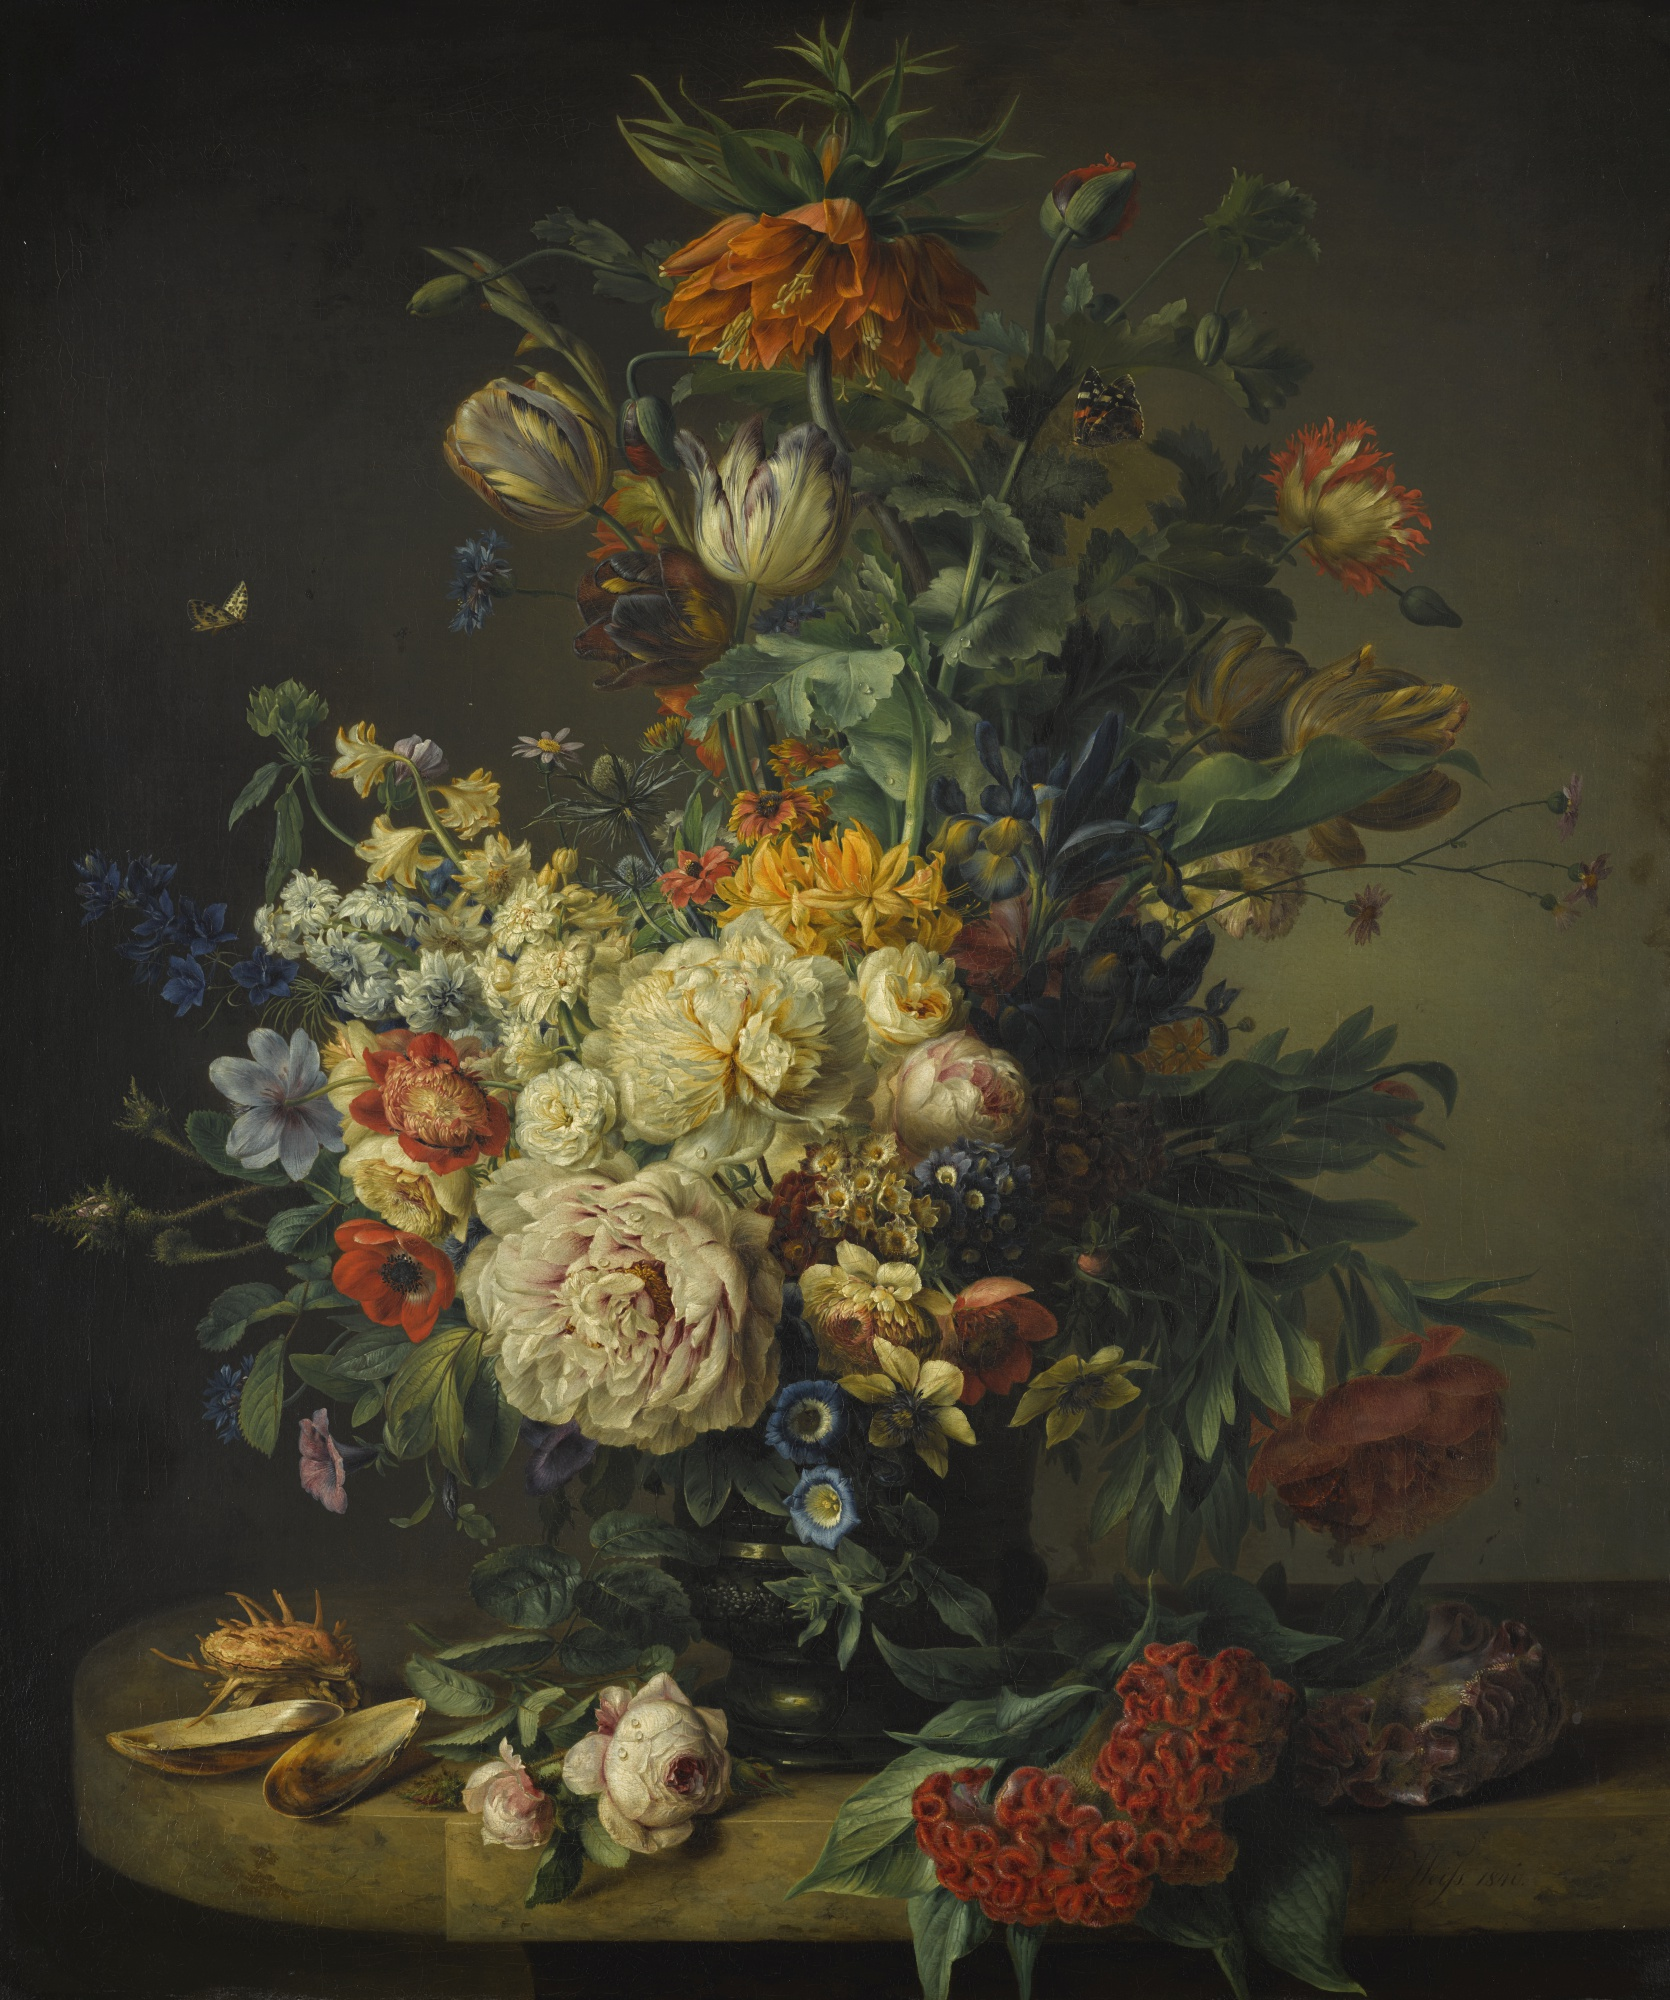 Still Life with Roses, Tulips, and Imperial Fritillary, by Anton Weiss, 1840